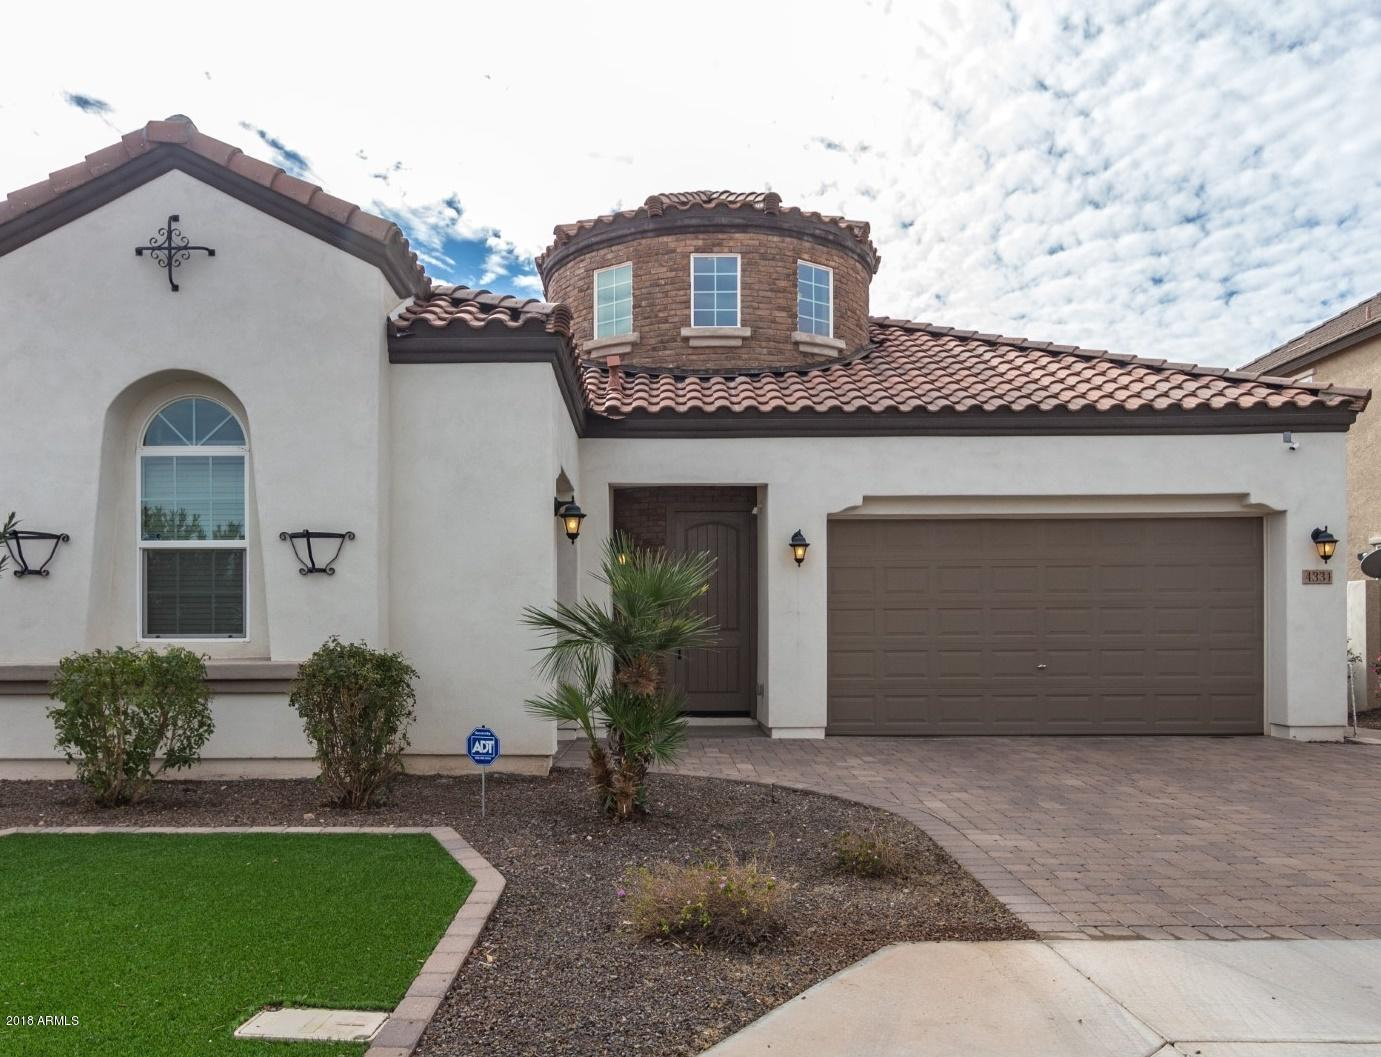 4331 E ZION Way Chandler, AZ 85249 - MLS #: 5853894